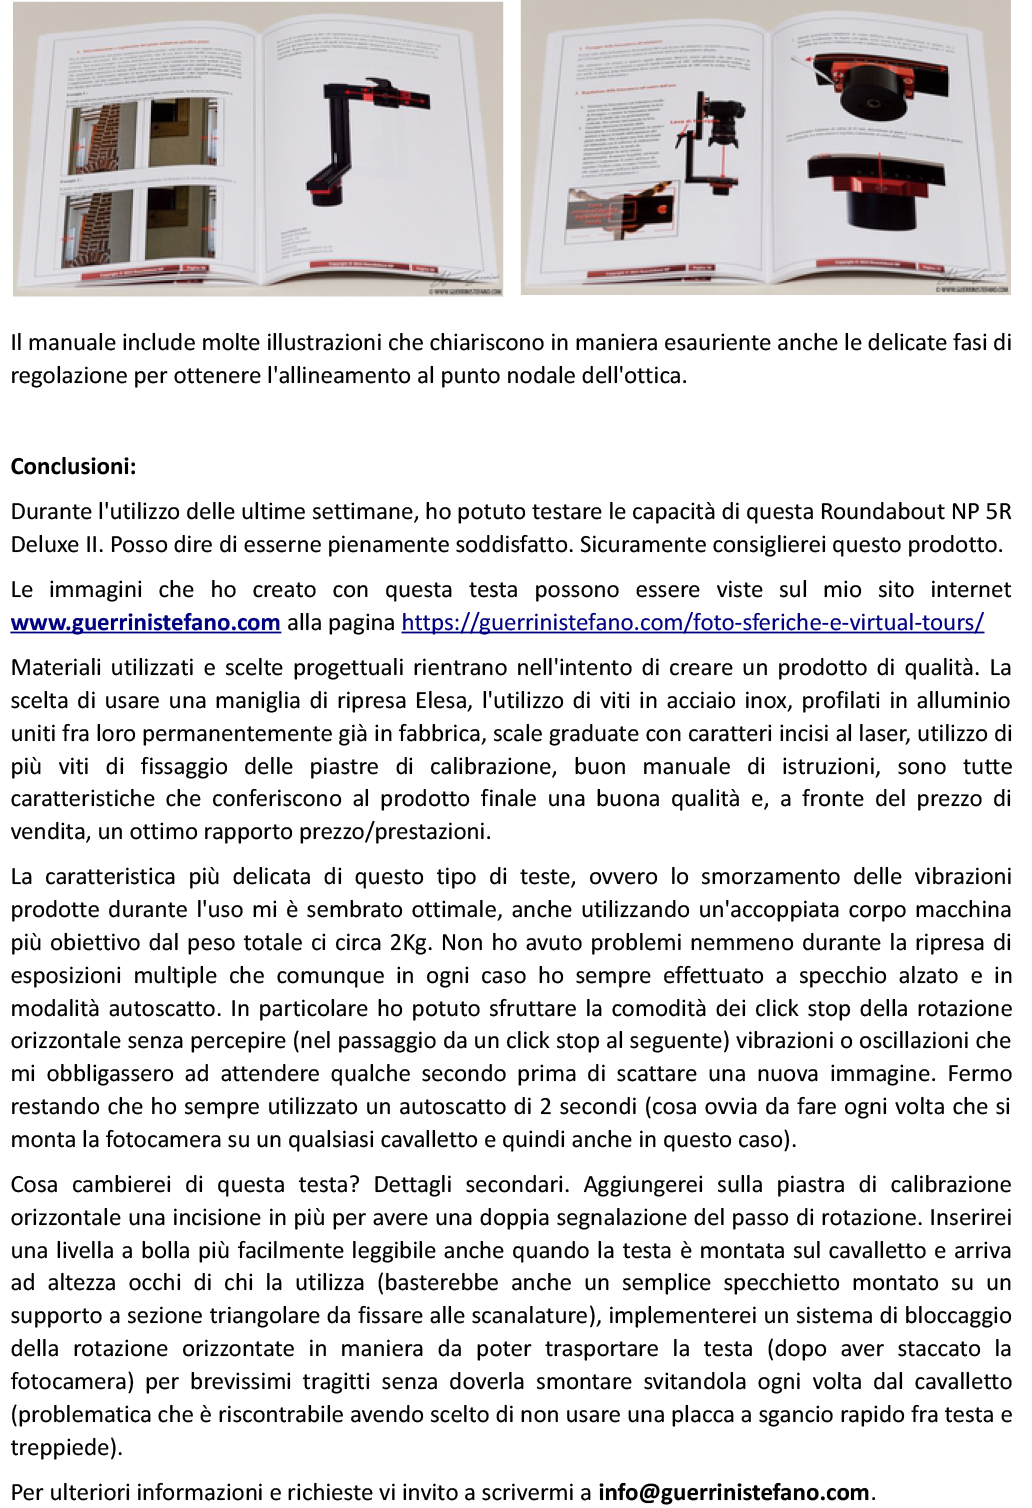 Roundabout NP italian review by Guerrini Stefano-17